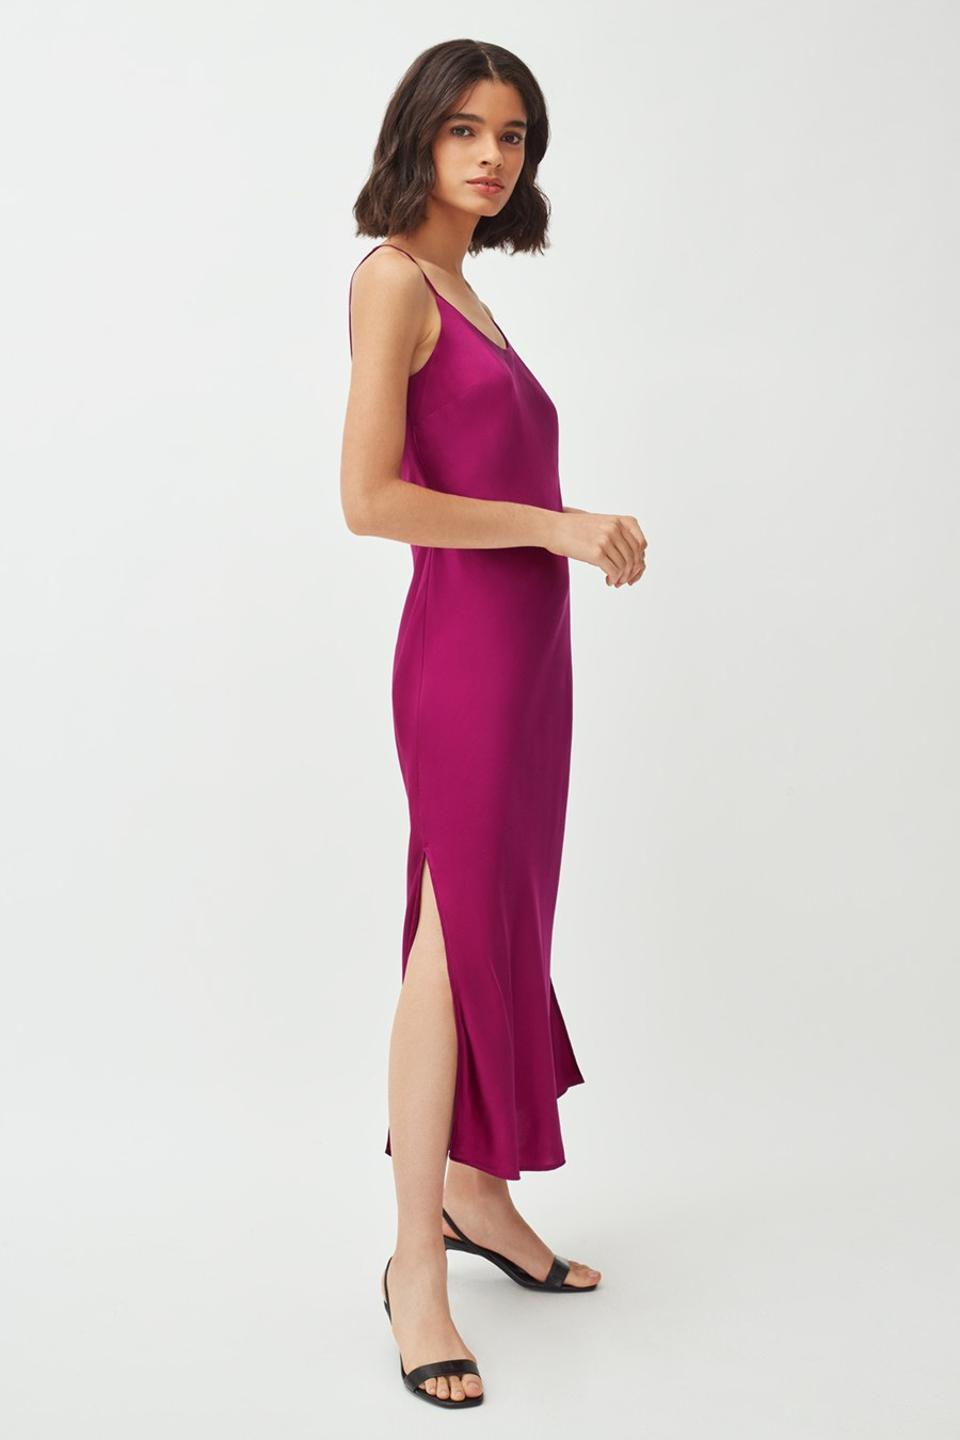 Amethyst Silk Charmeuse from Cuyana